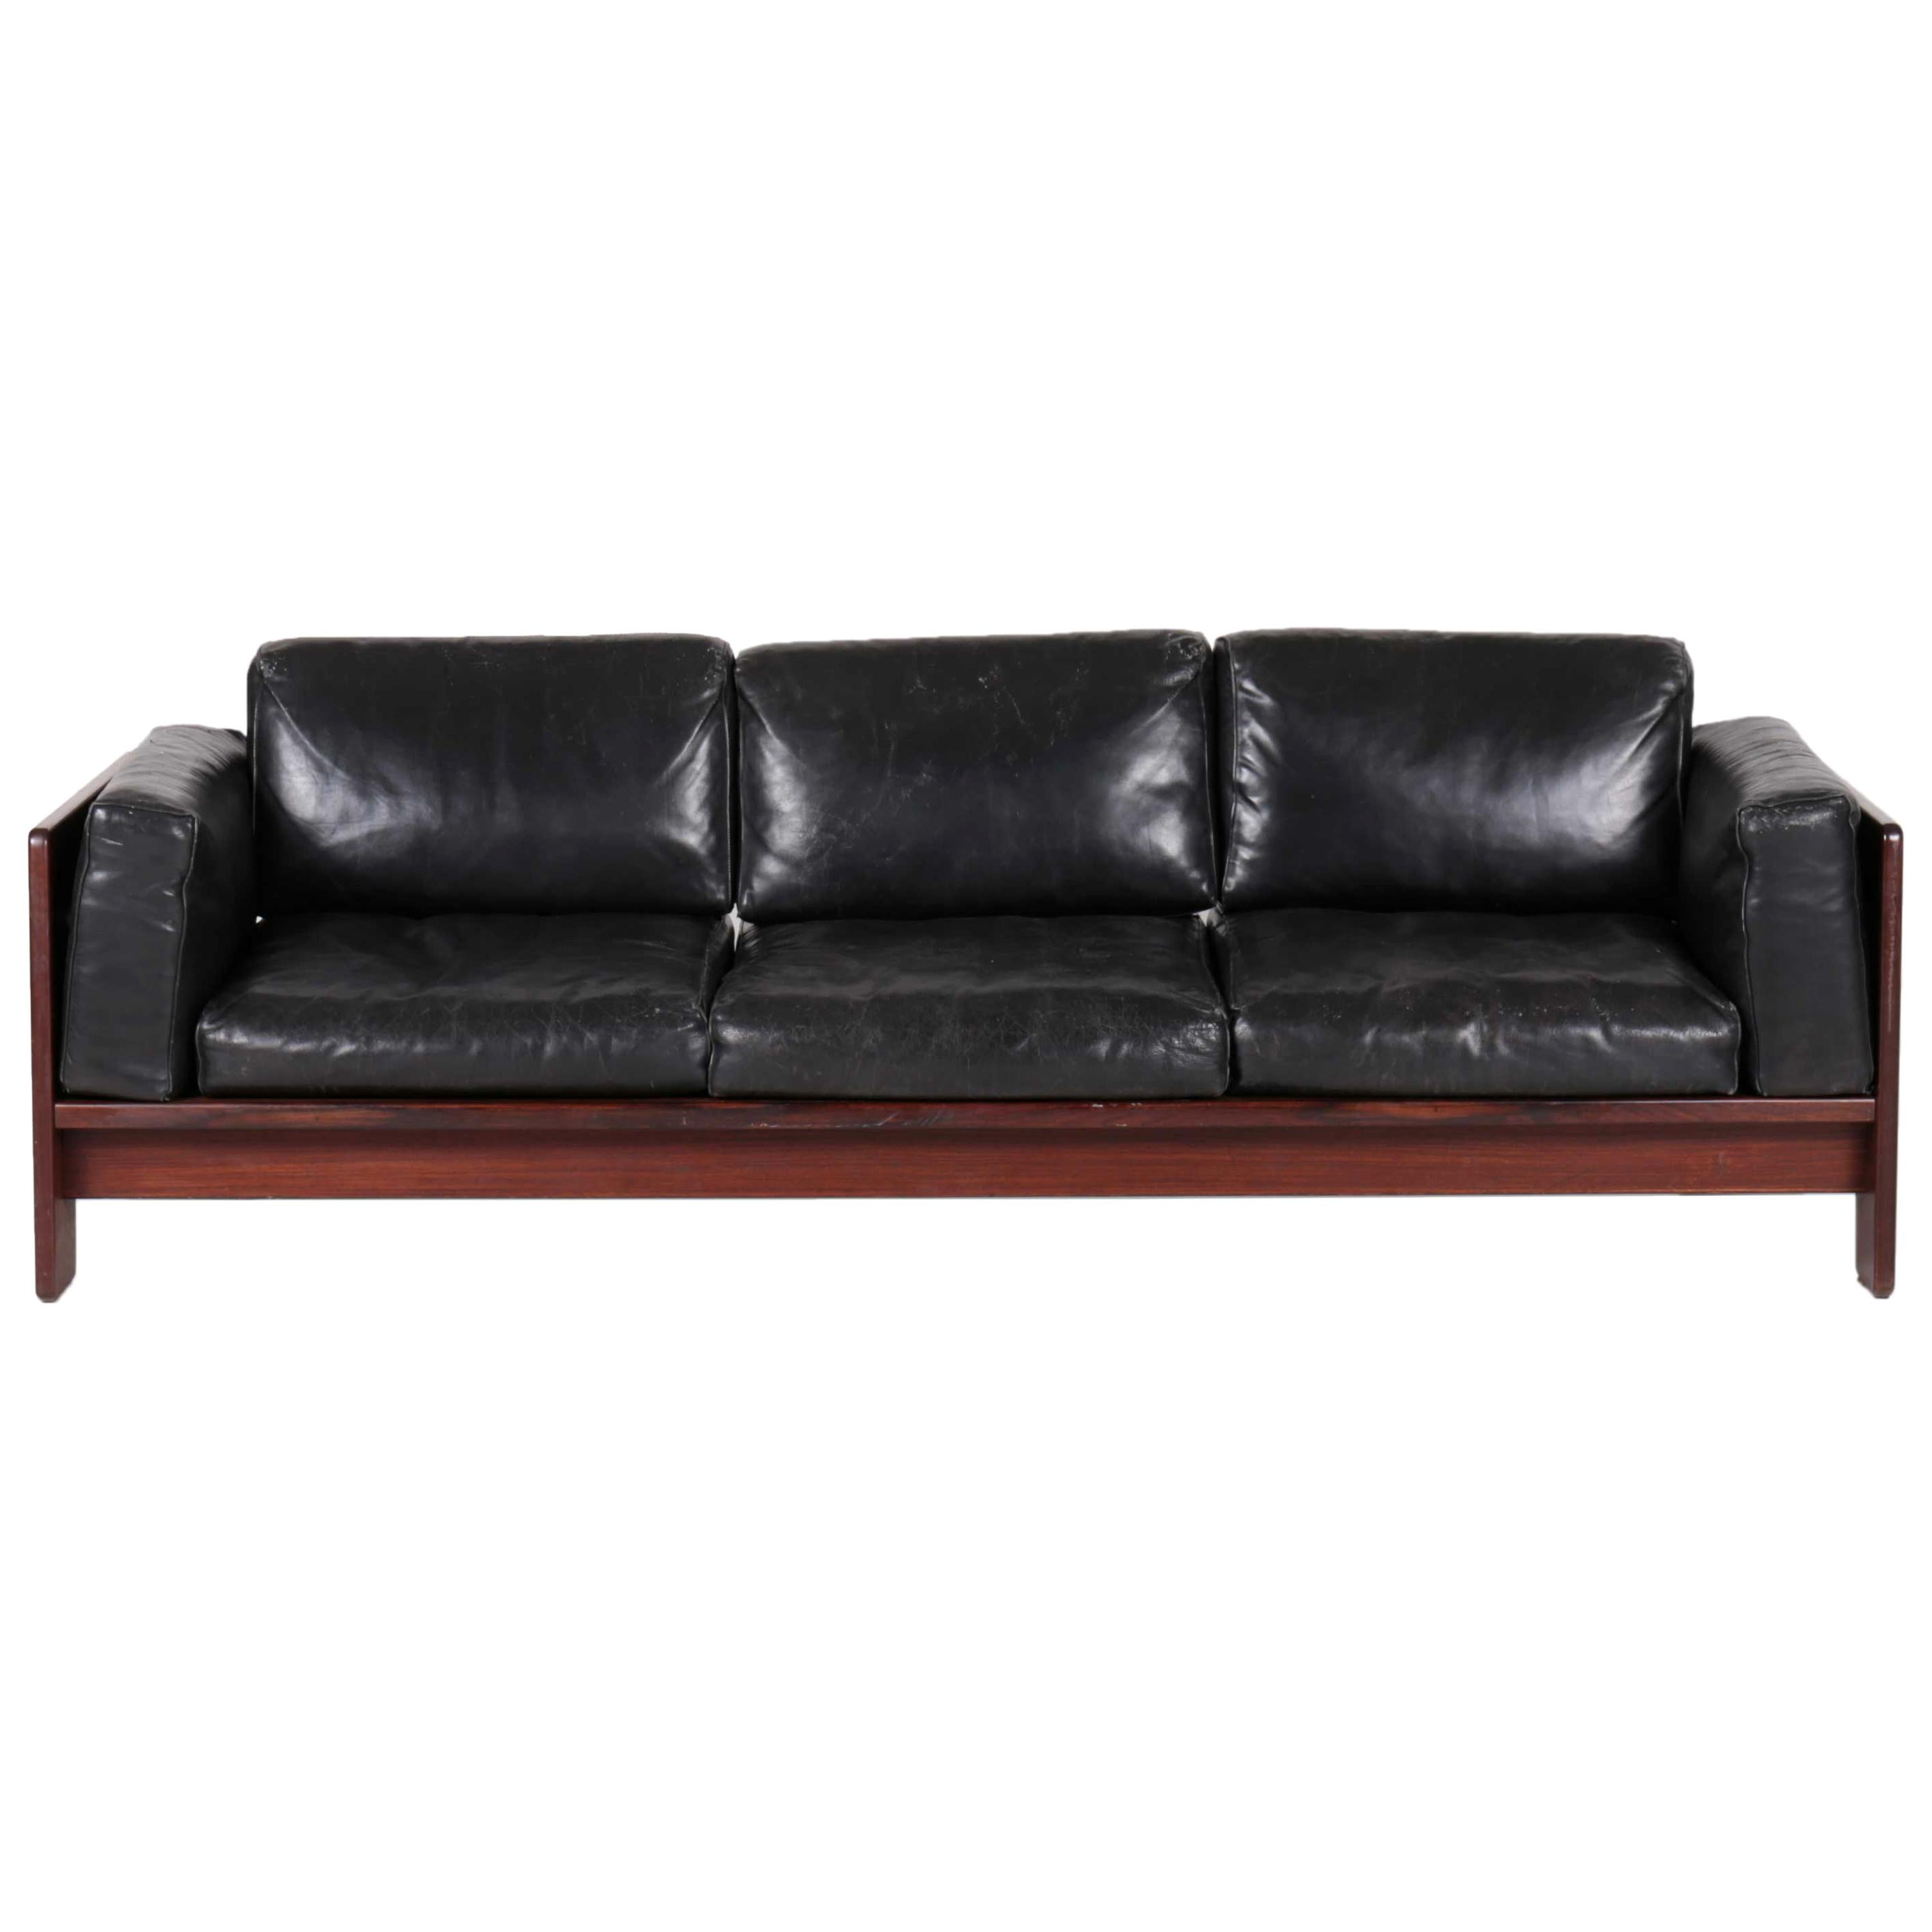 Bastiano 3 Seater Sofa in Wood by Tobia Scarpa